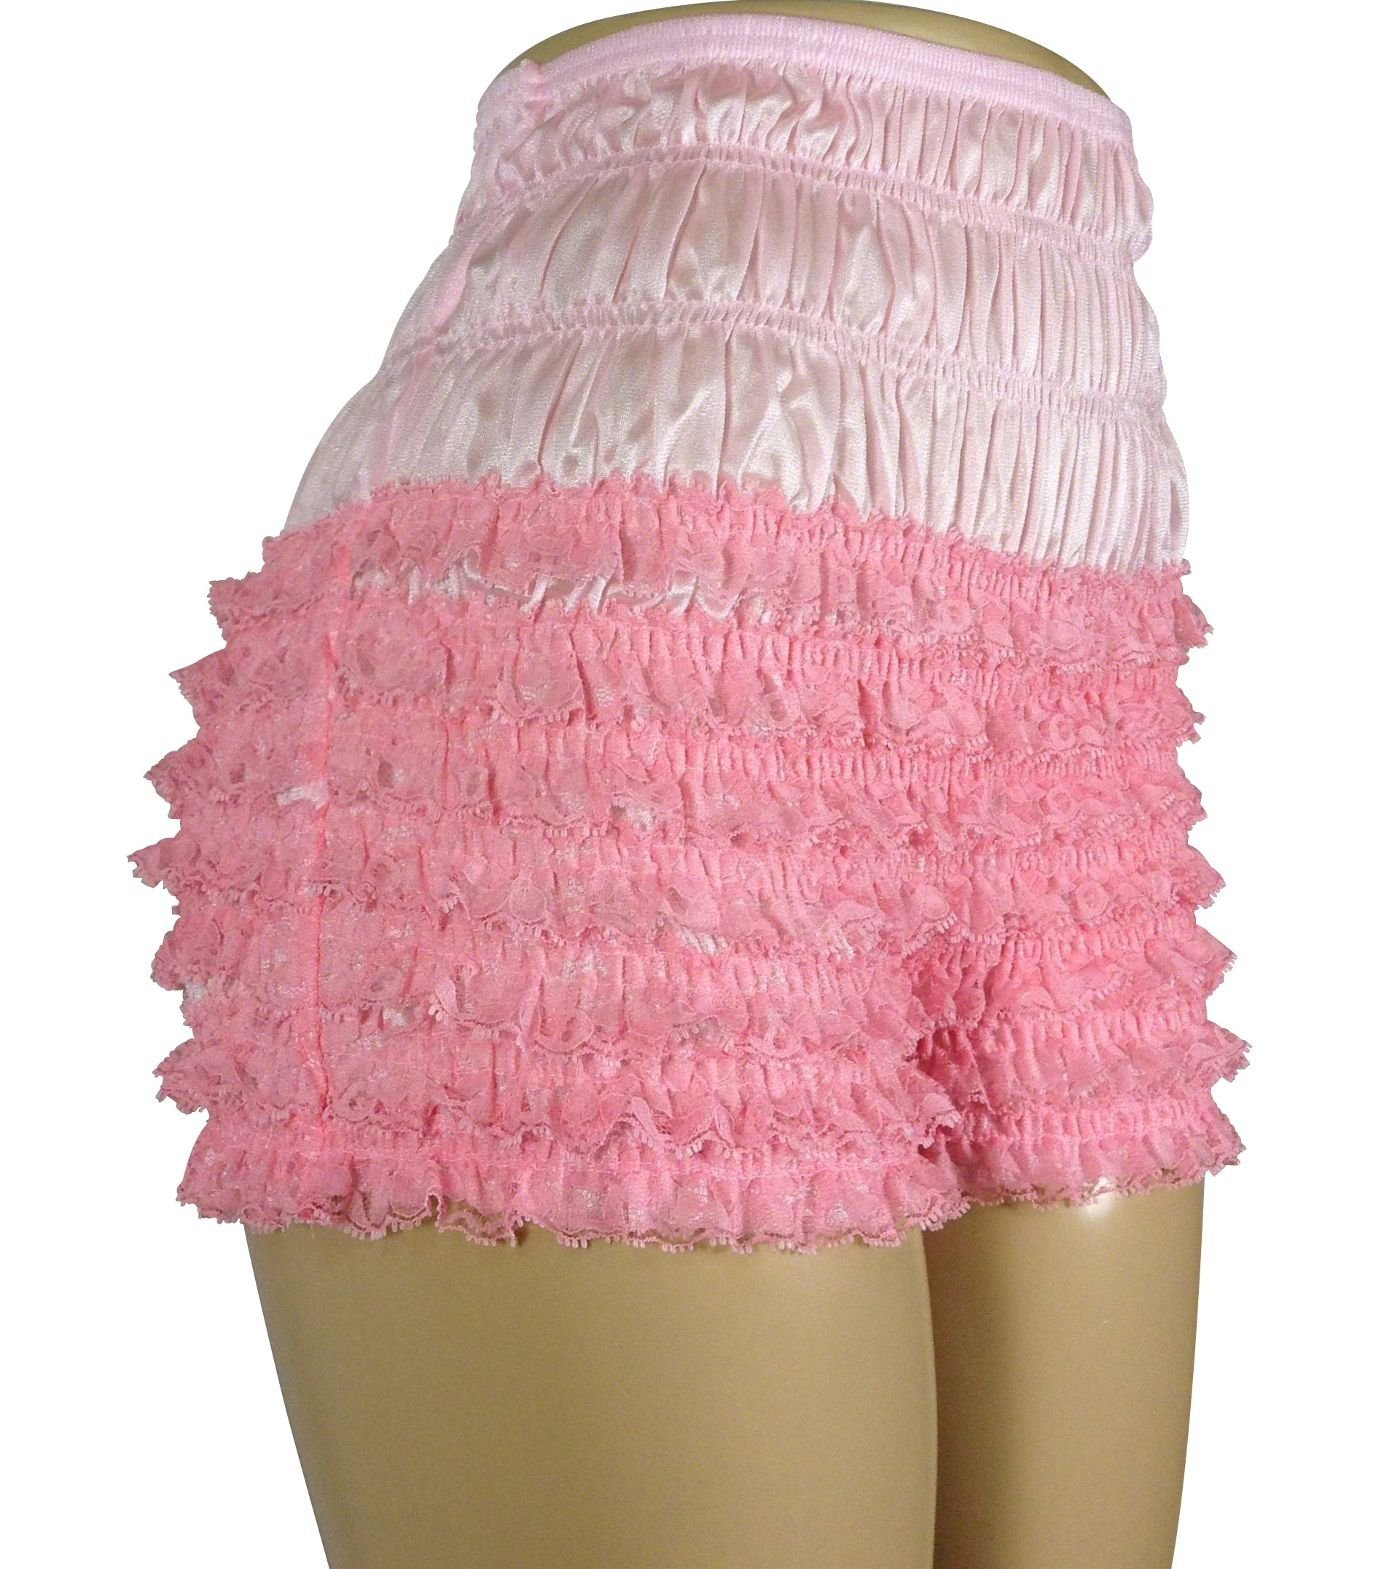 Malco Modes Womens Sexy Ruffle Panties Tanga Dance Bloomers Sissy Booty Shorts (Light Pink, Large) by Malco Modes